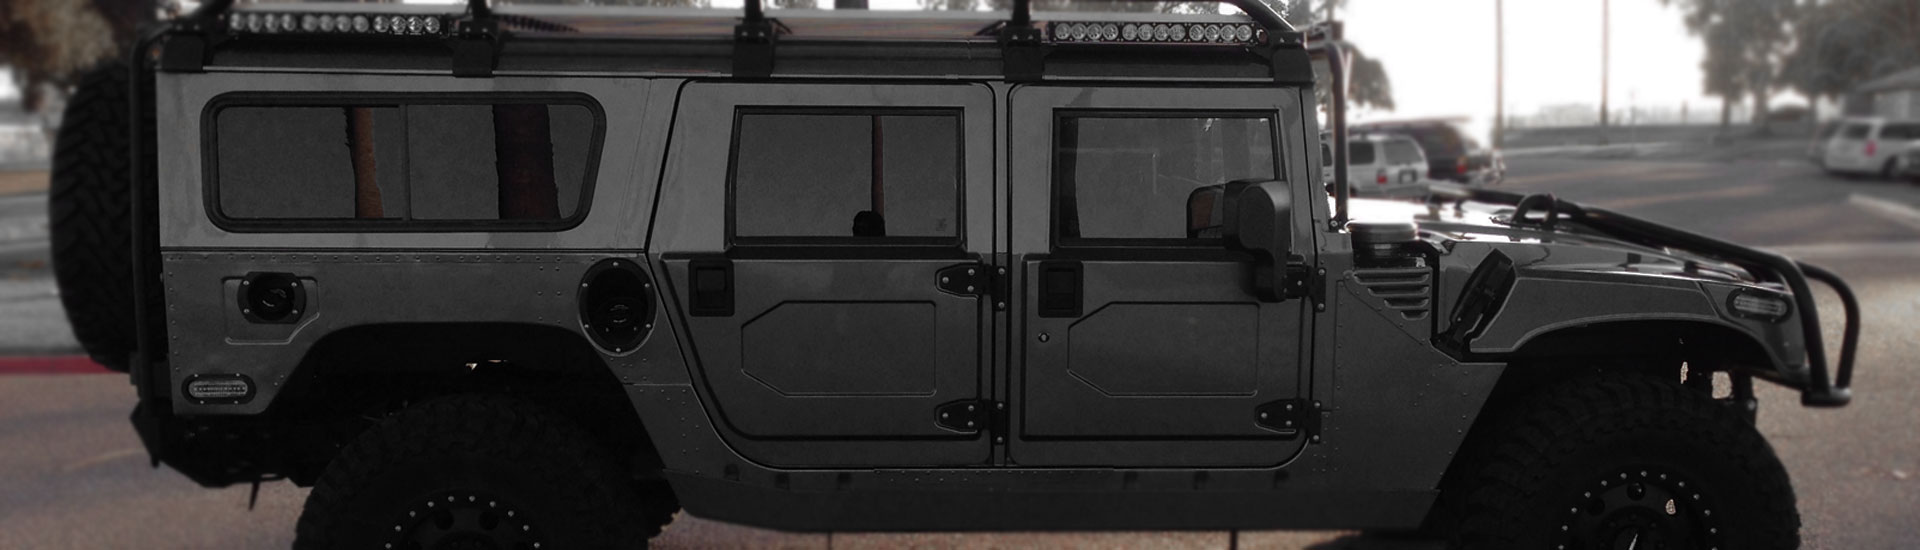 2009 Hummer H2 Window Tint